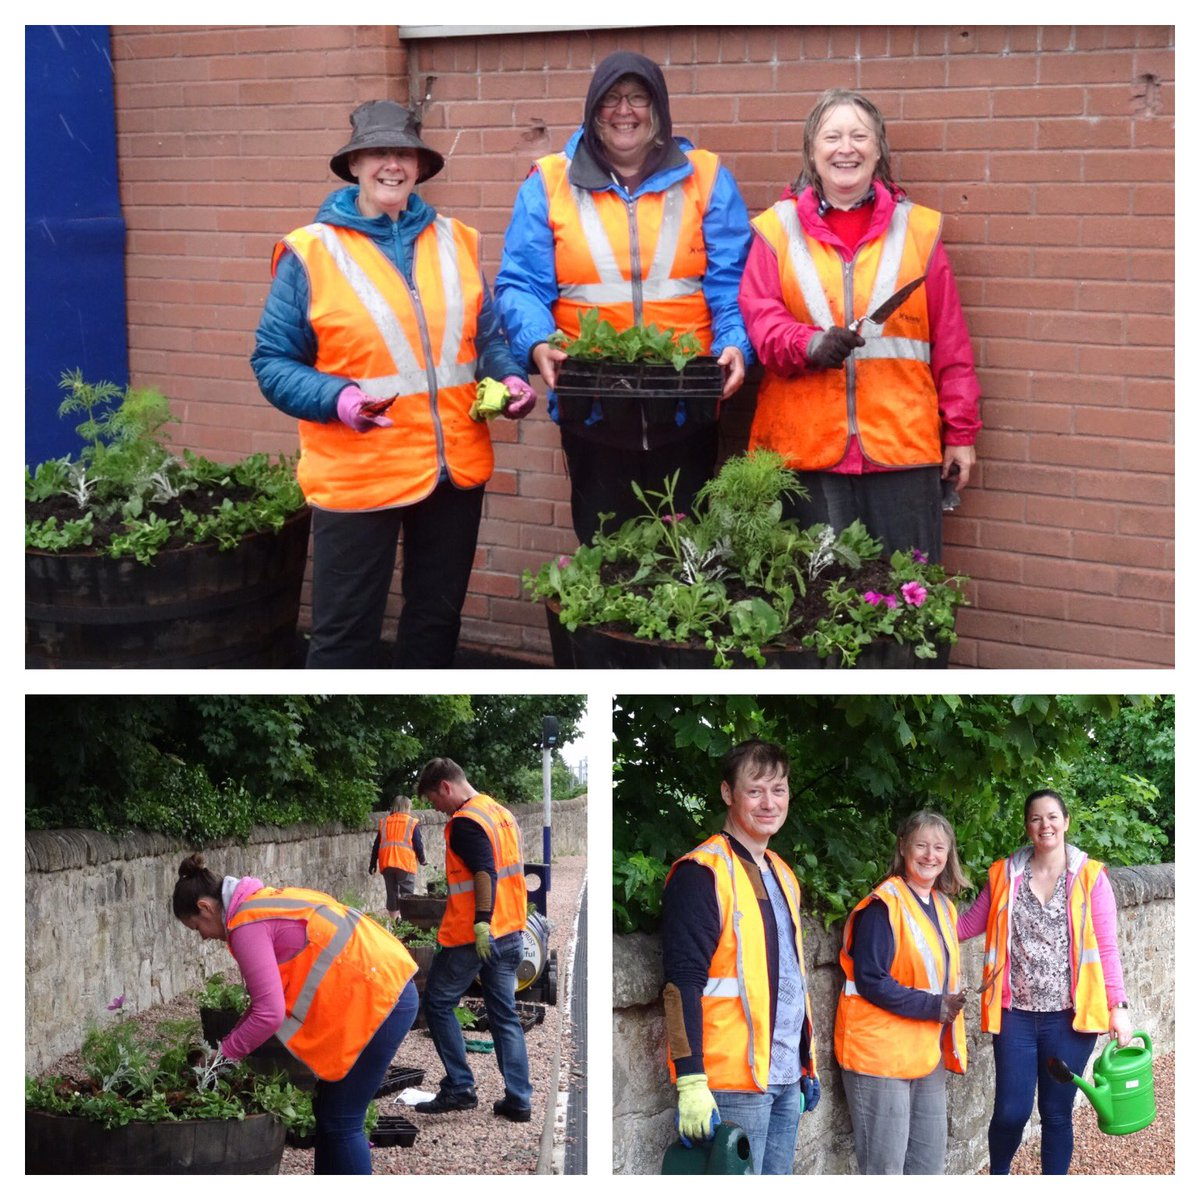 #scotrail #stationadopters busy #planting over 1000 summer plants in rain! #linlithgow station #burghbeautiful @LinlithgowVisit #volunteers<br>http://pic.twitter.com/WwnMj77aRJ